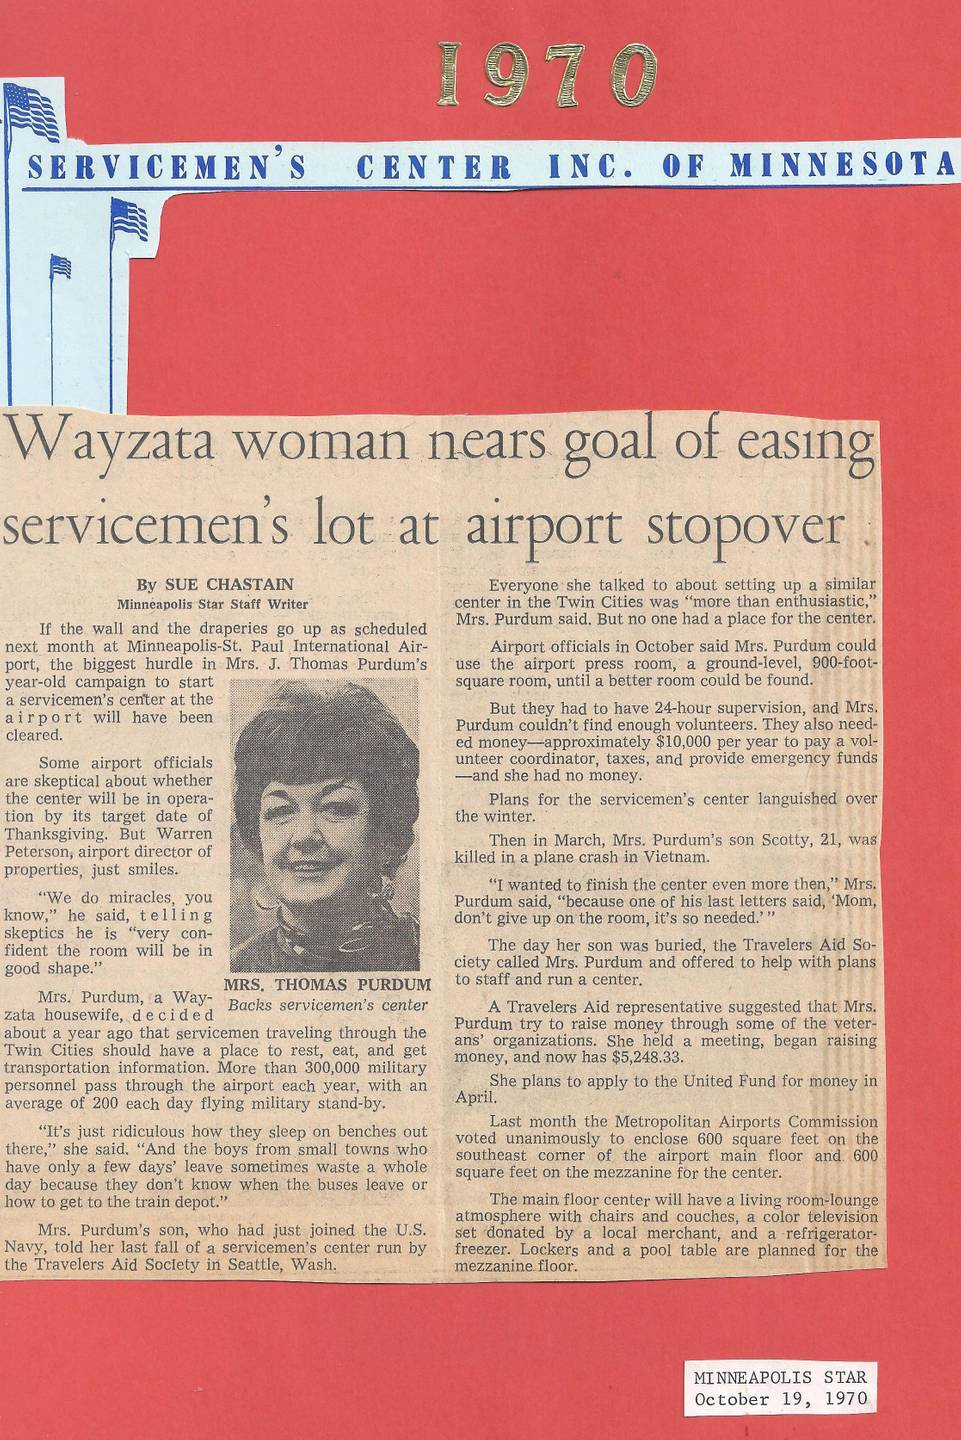 A news clipping from October 19, 1970 with an image of Maggie Purdum.